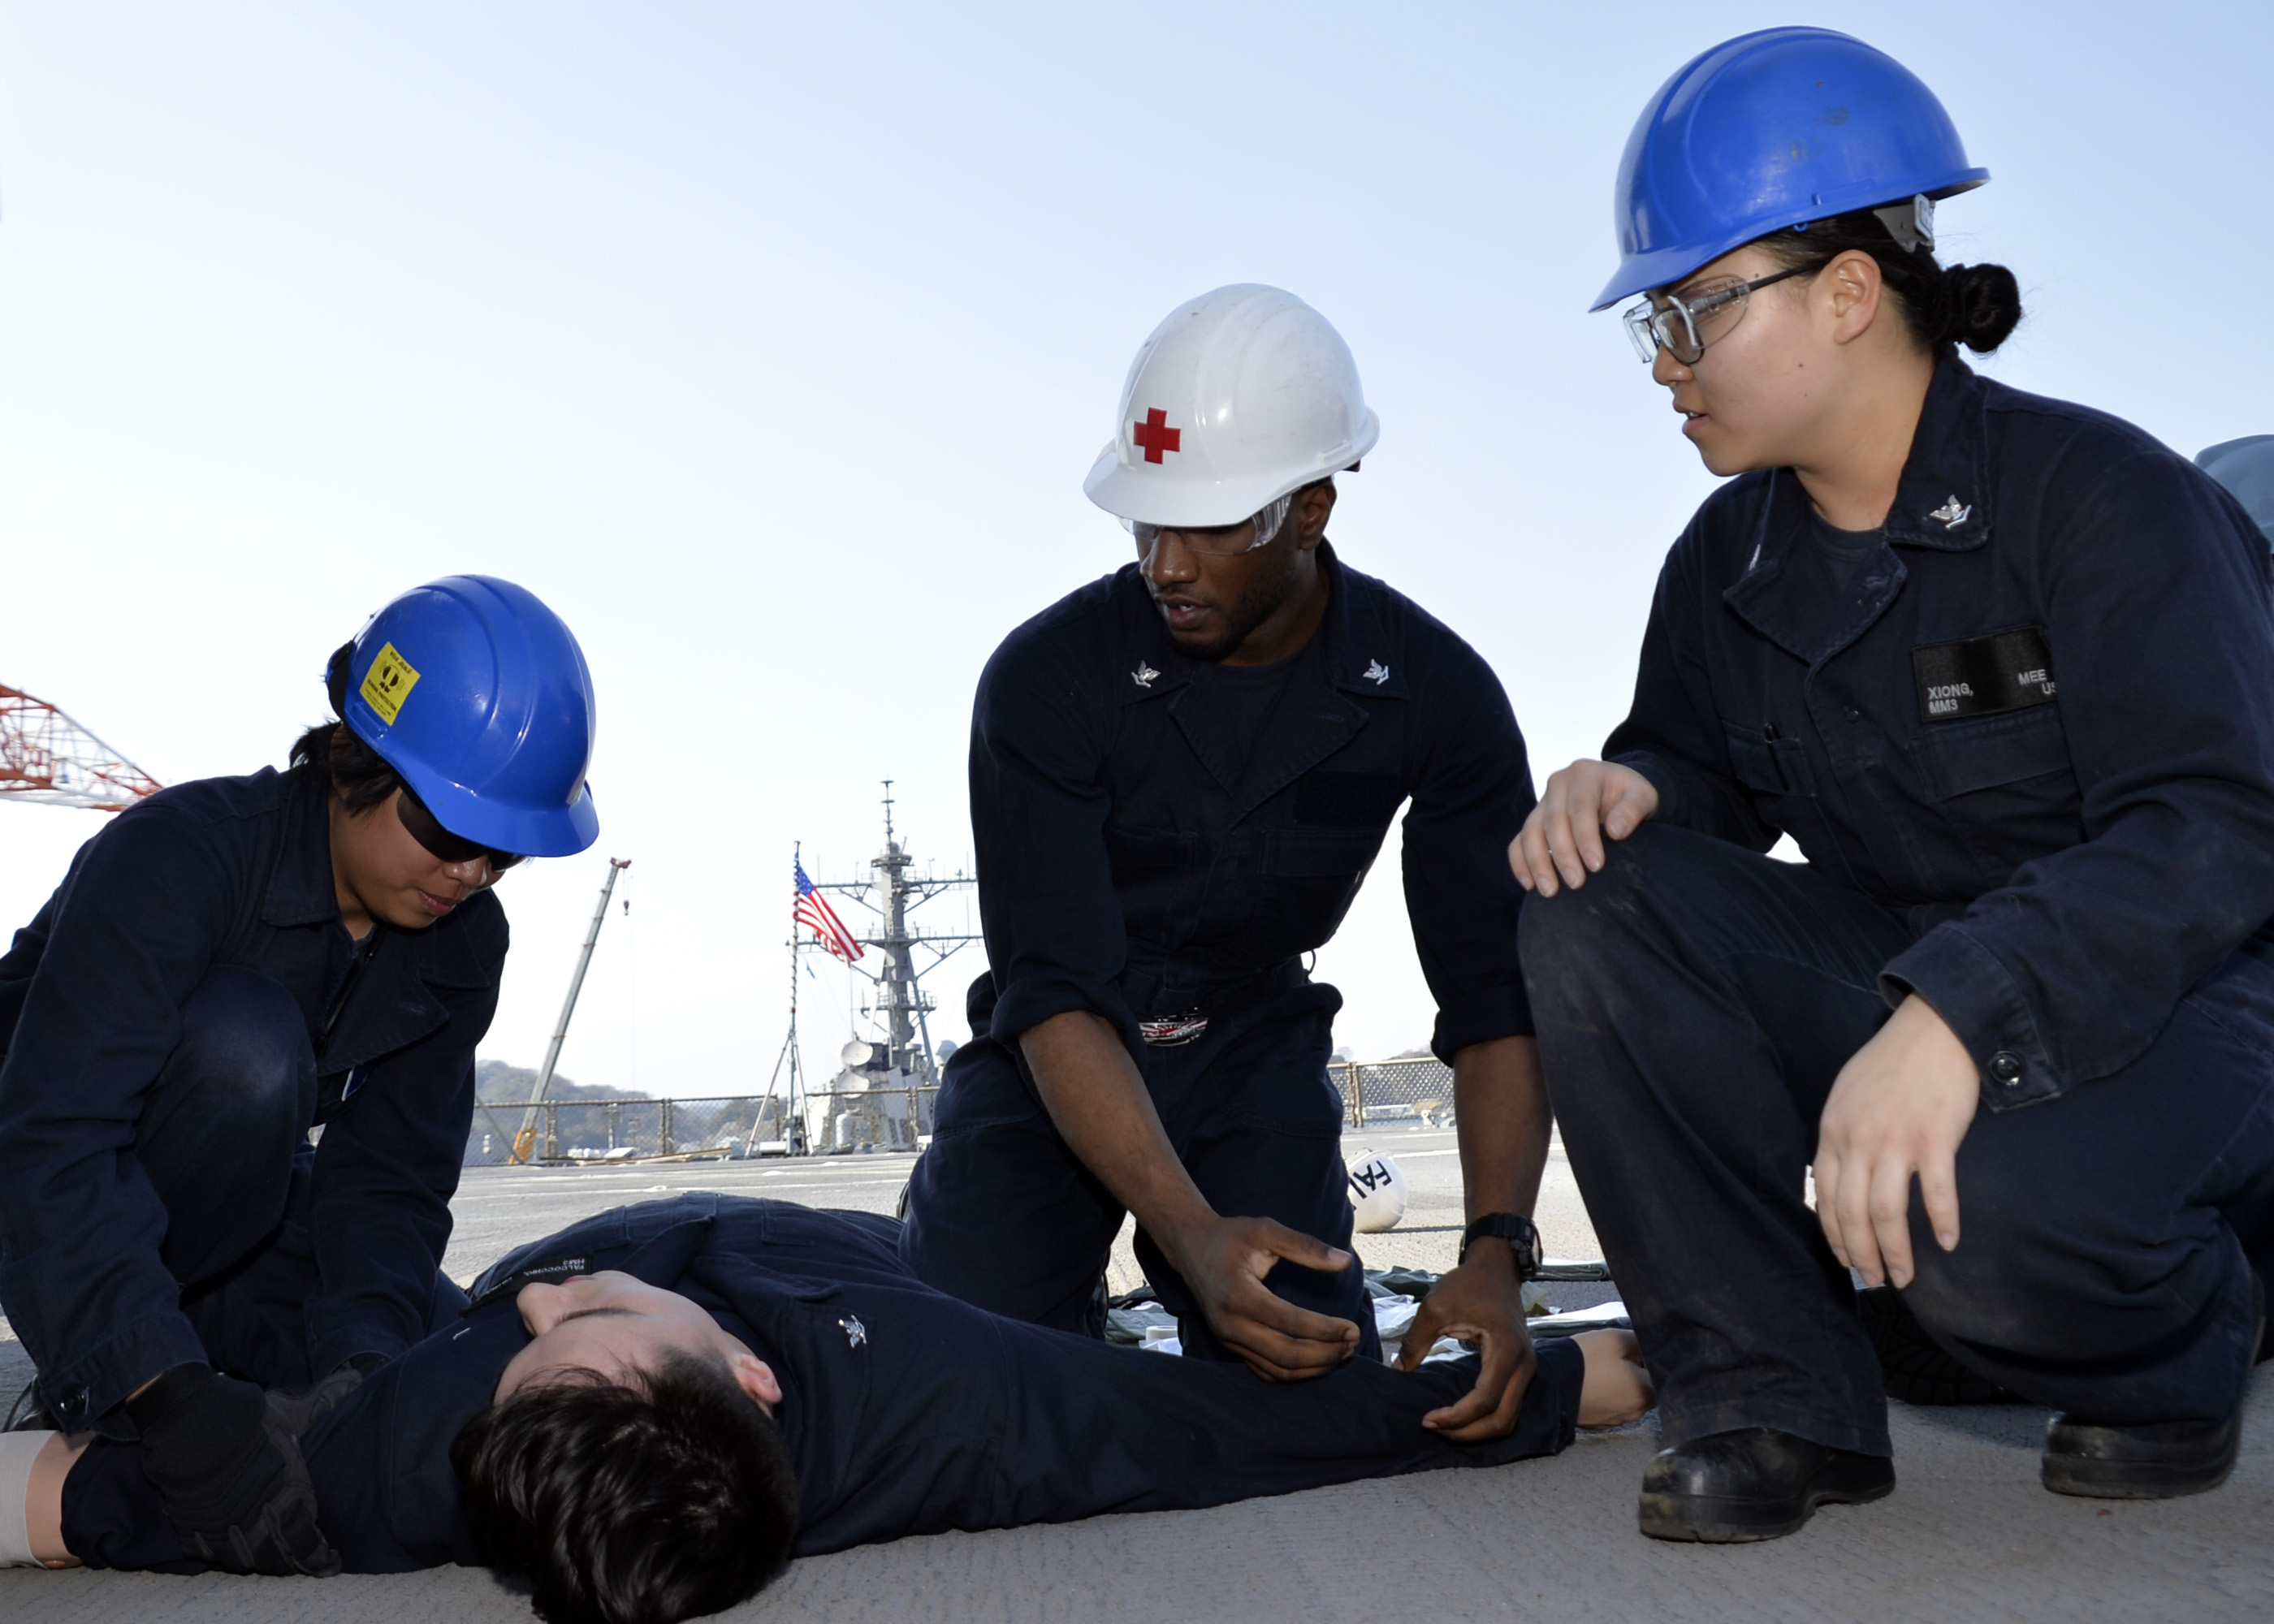 YOKOSUKA (NNS) – The crew of U.S. 7th Fleet flagship USS Blue Ridge (LCC 19) successfully completed Fleet Support Operations-Medical (FSO-M) 1.1 and 1.2 assessments conducted Feb 20-March 12.